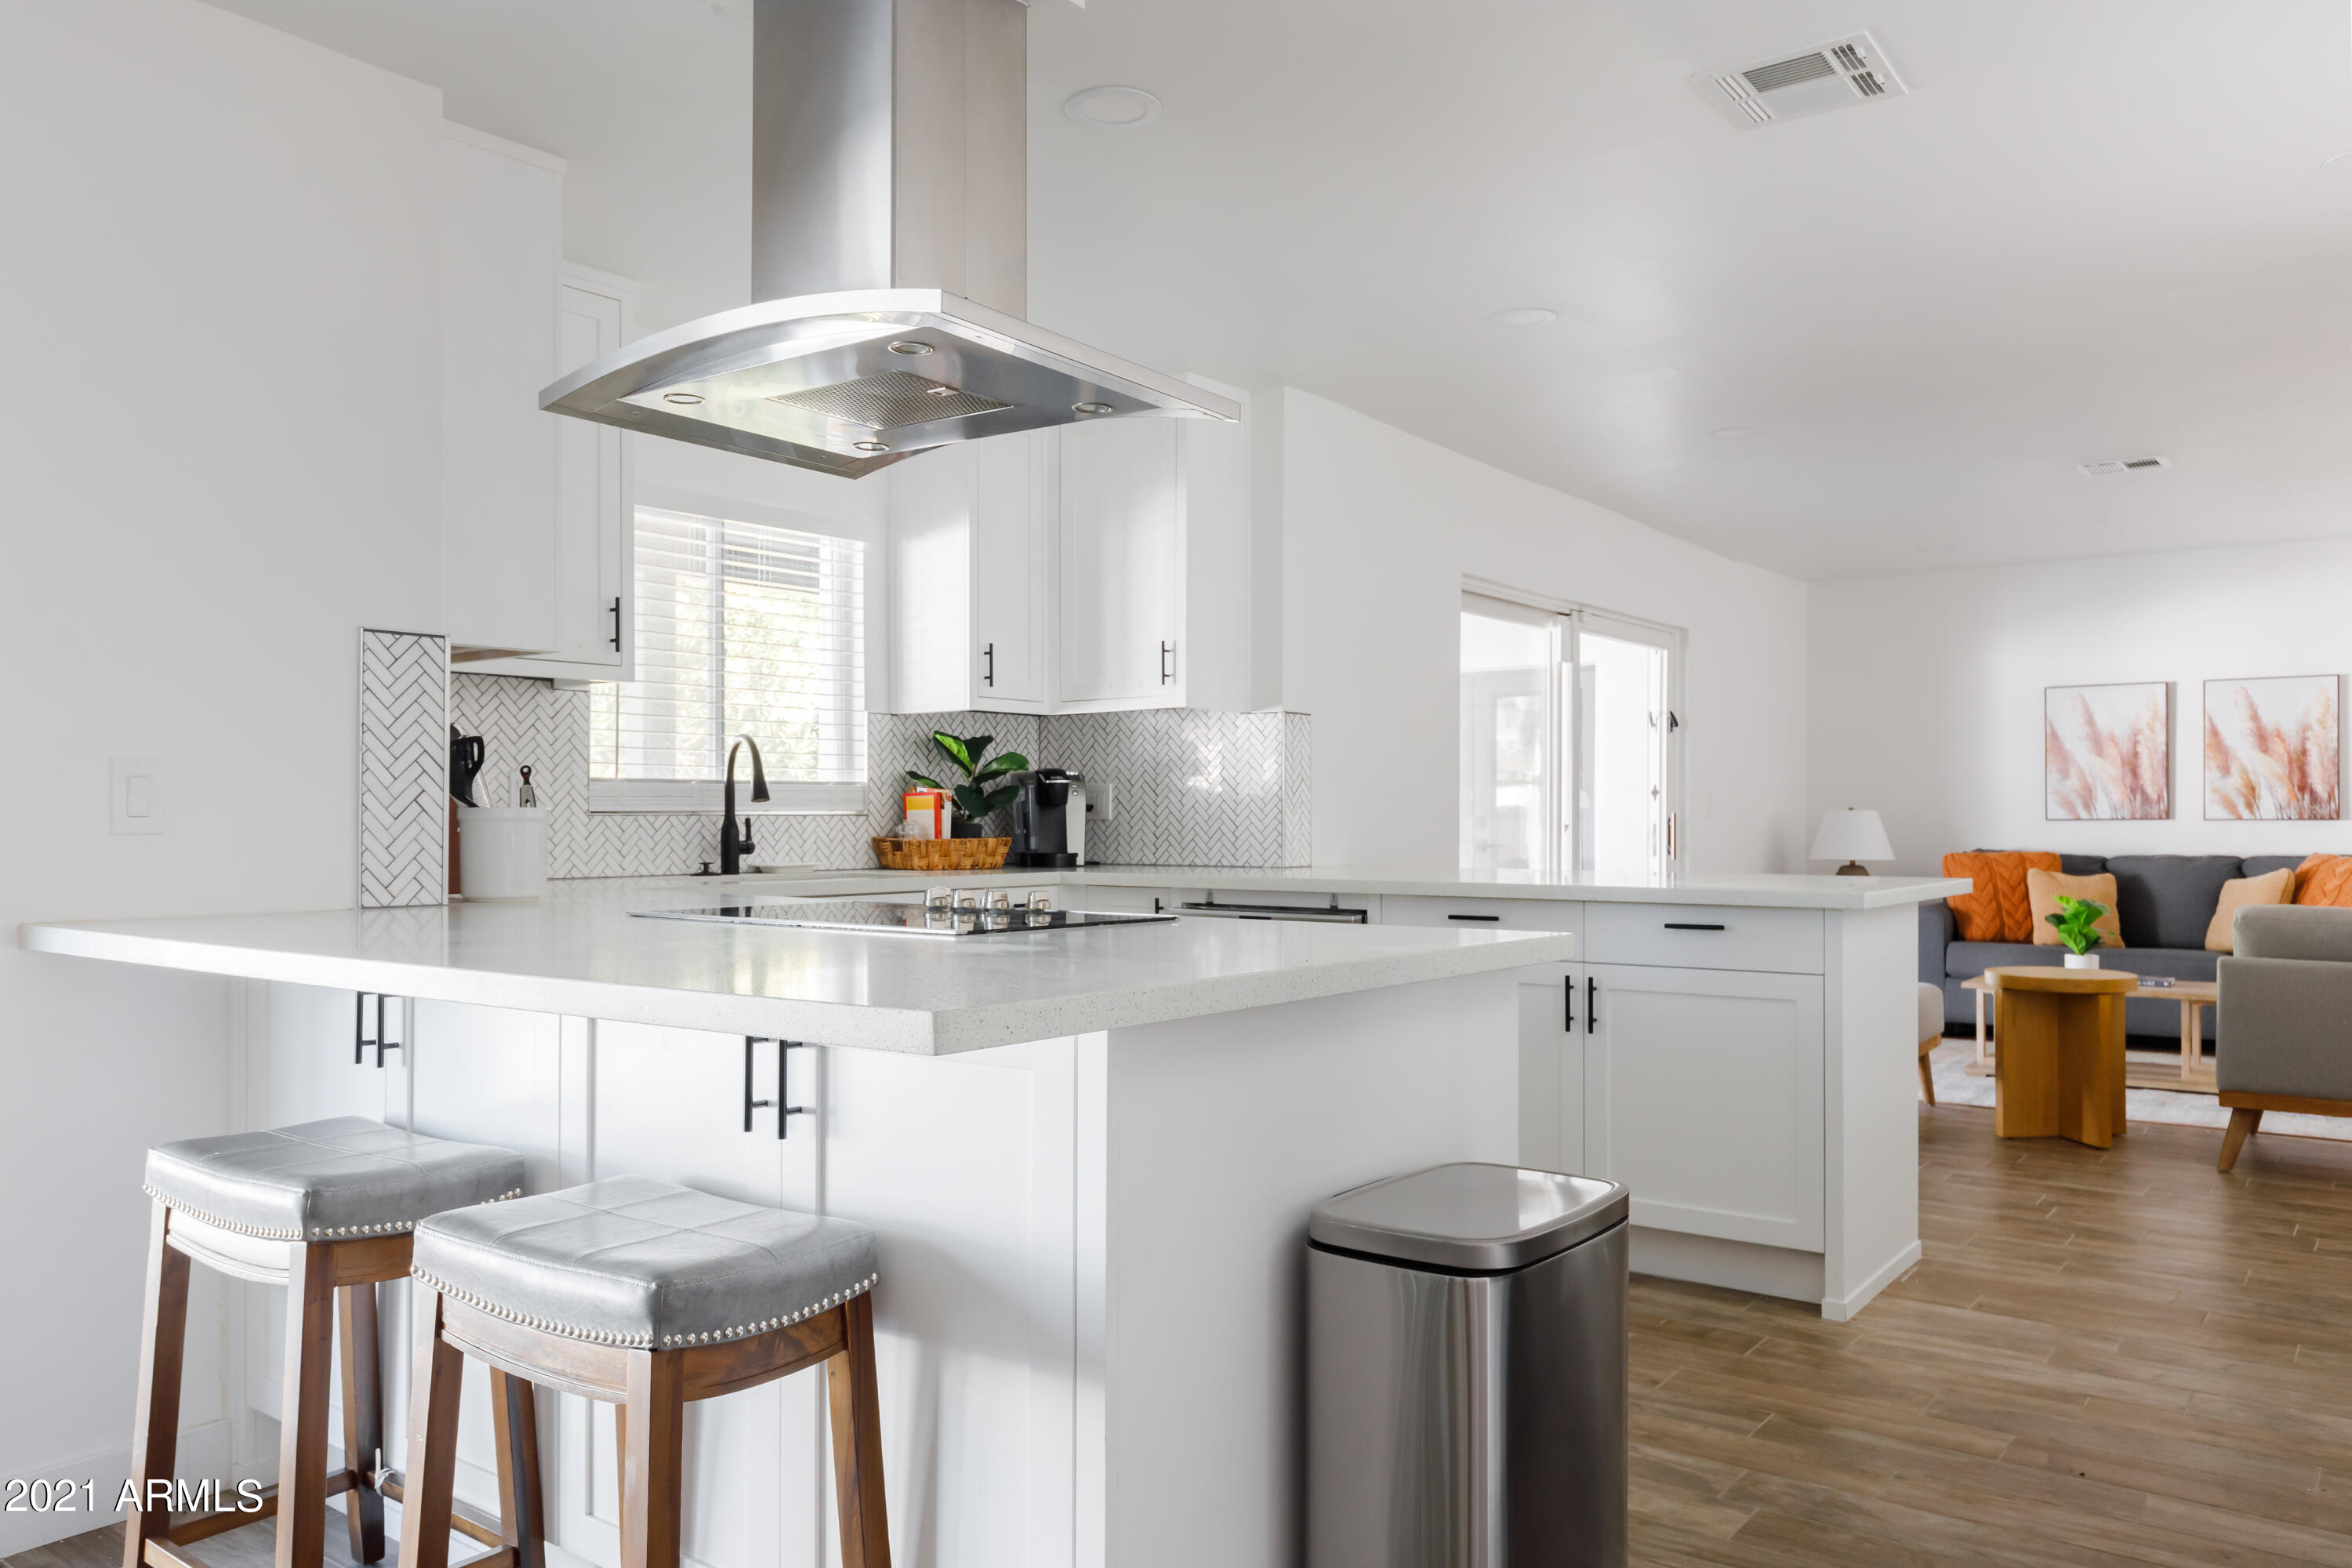 6602 E Sweetwater Avenue, Scottsdale, AZ 85254, 4 Bedrooms Bedrooms, ,Residential Lease,For Rent,6602 E Sweetwater Avenue,6300404